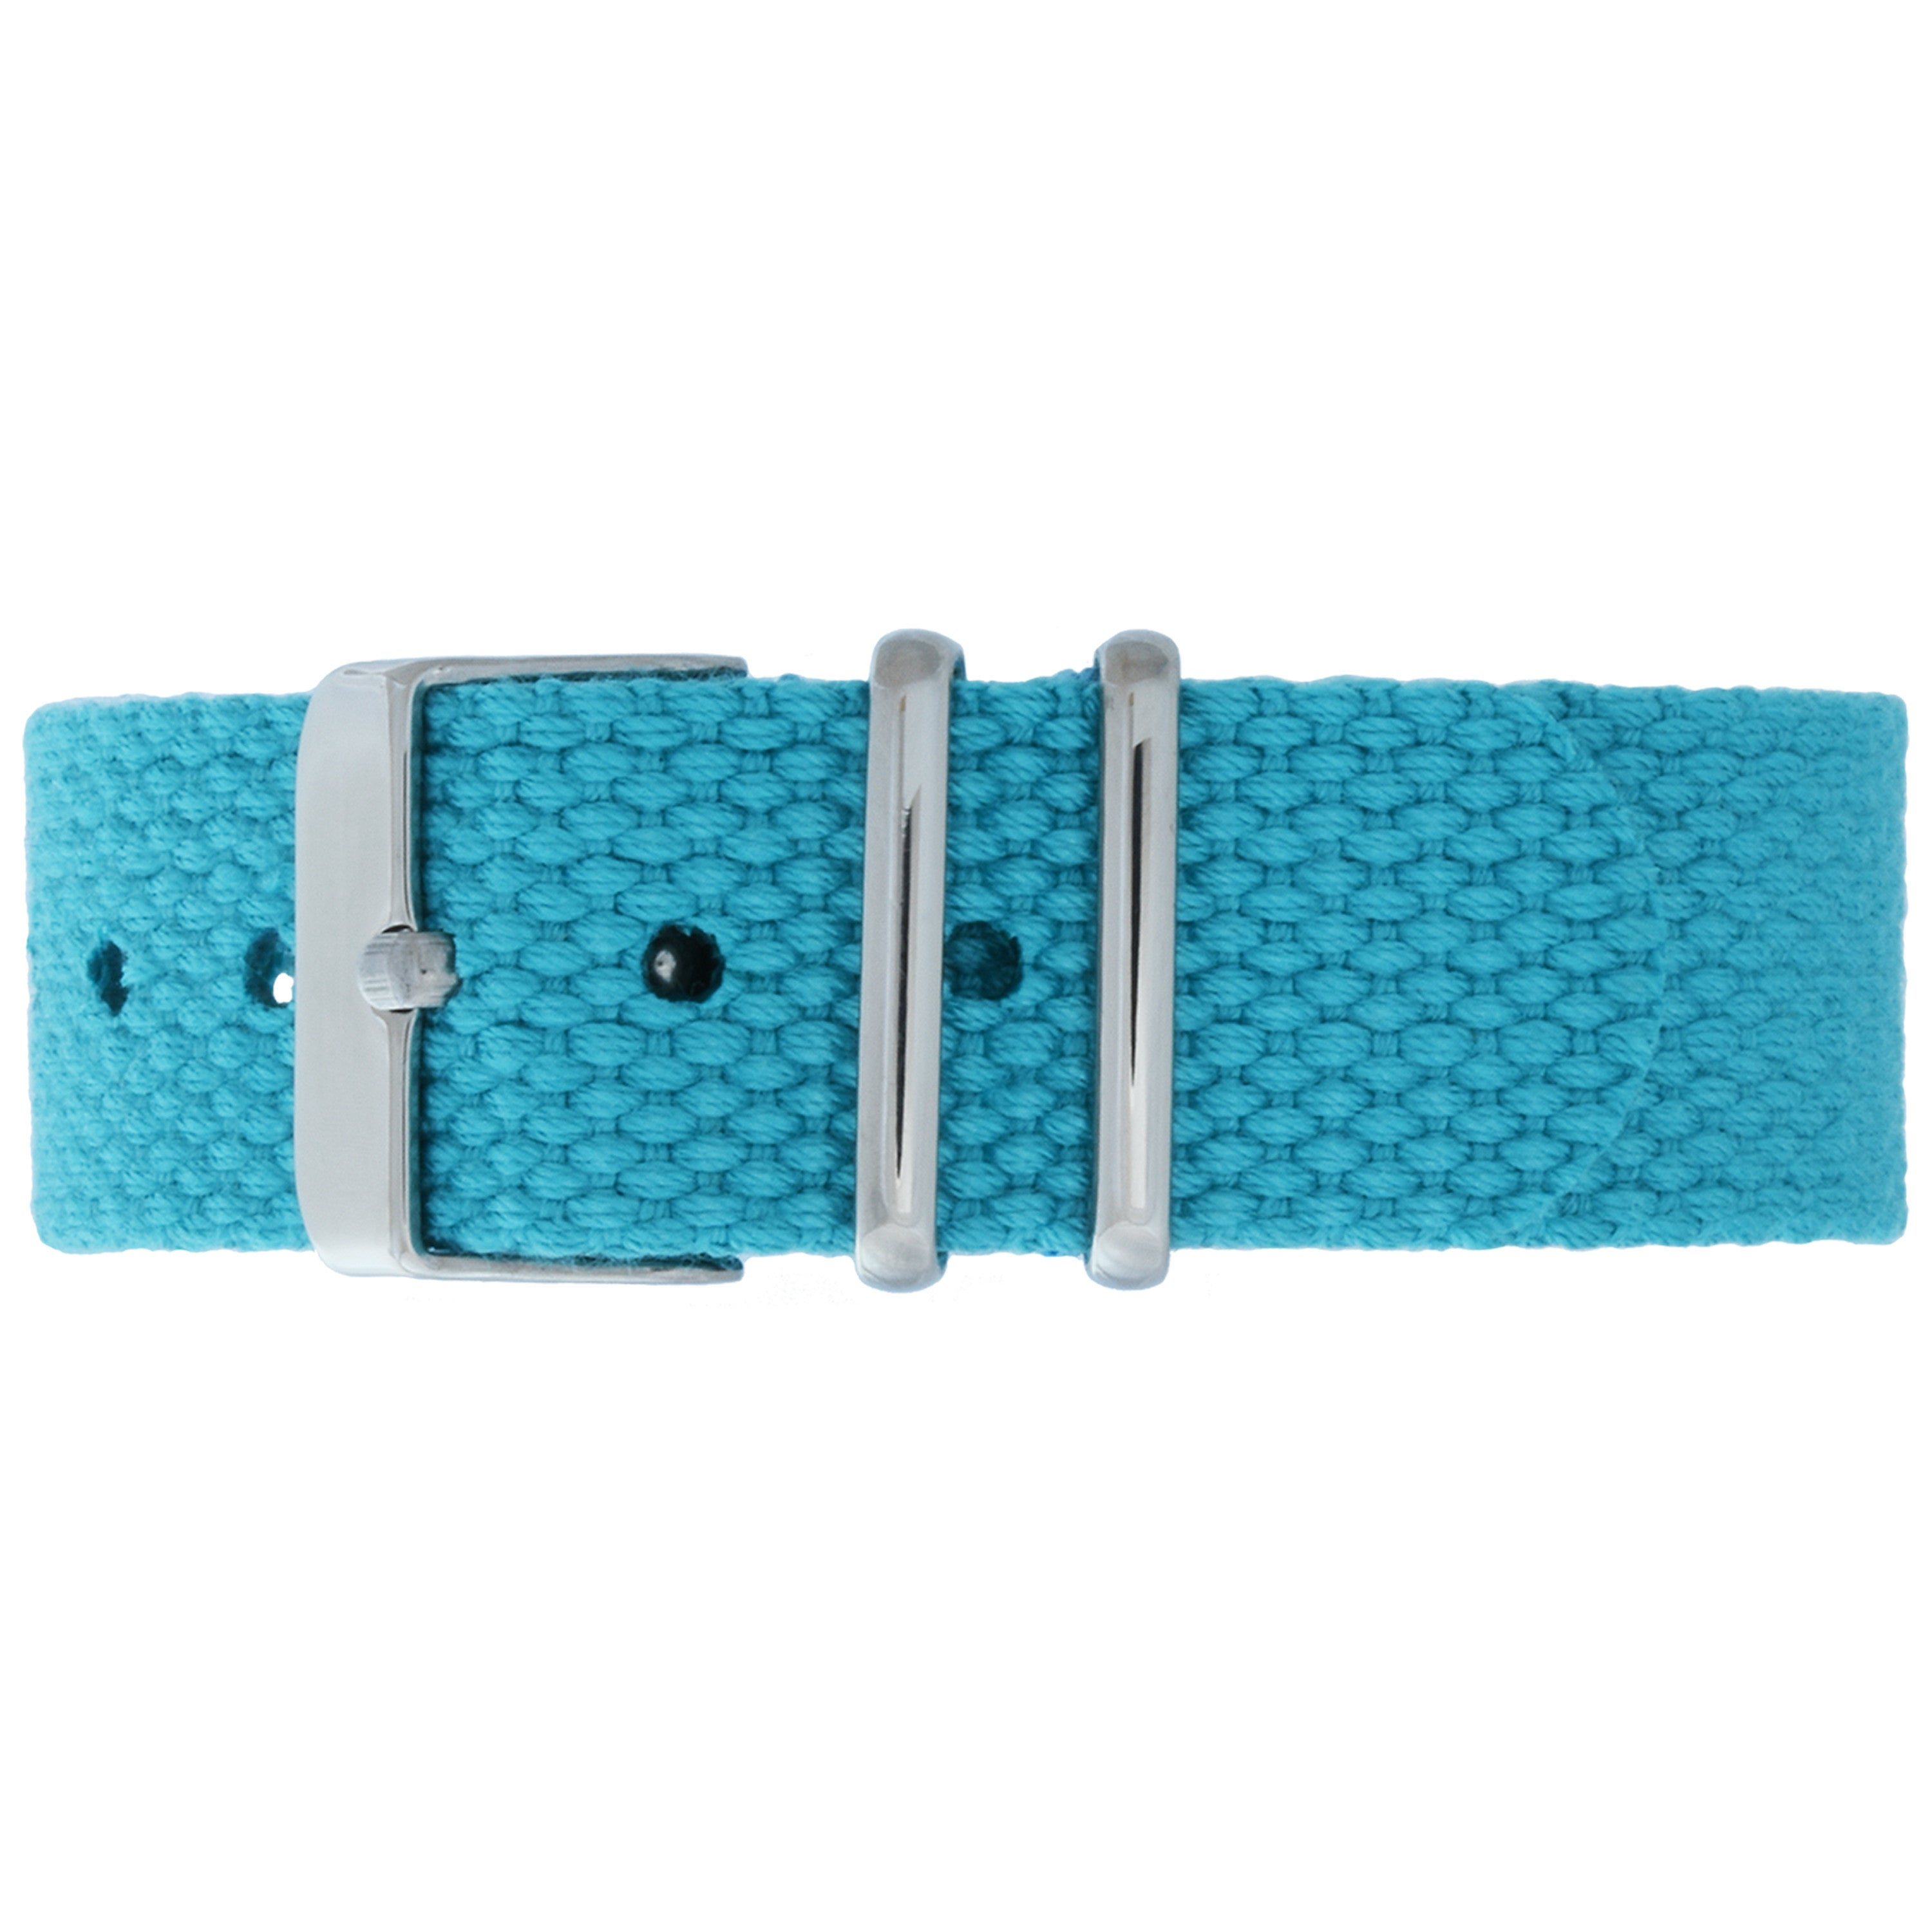 Caribbean Canvas Strap - Silver Buckle